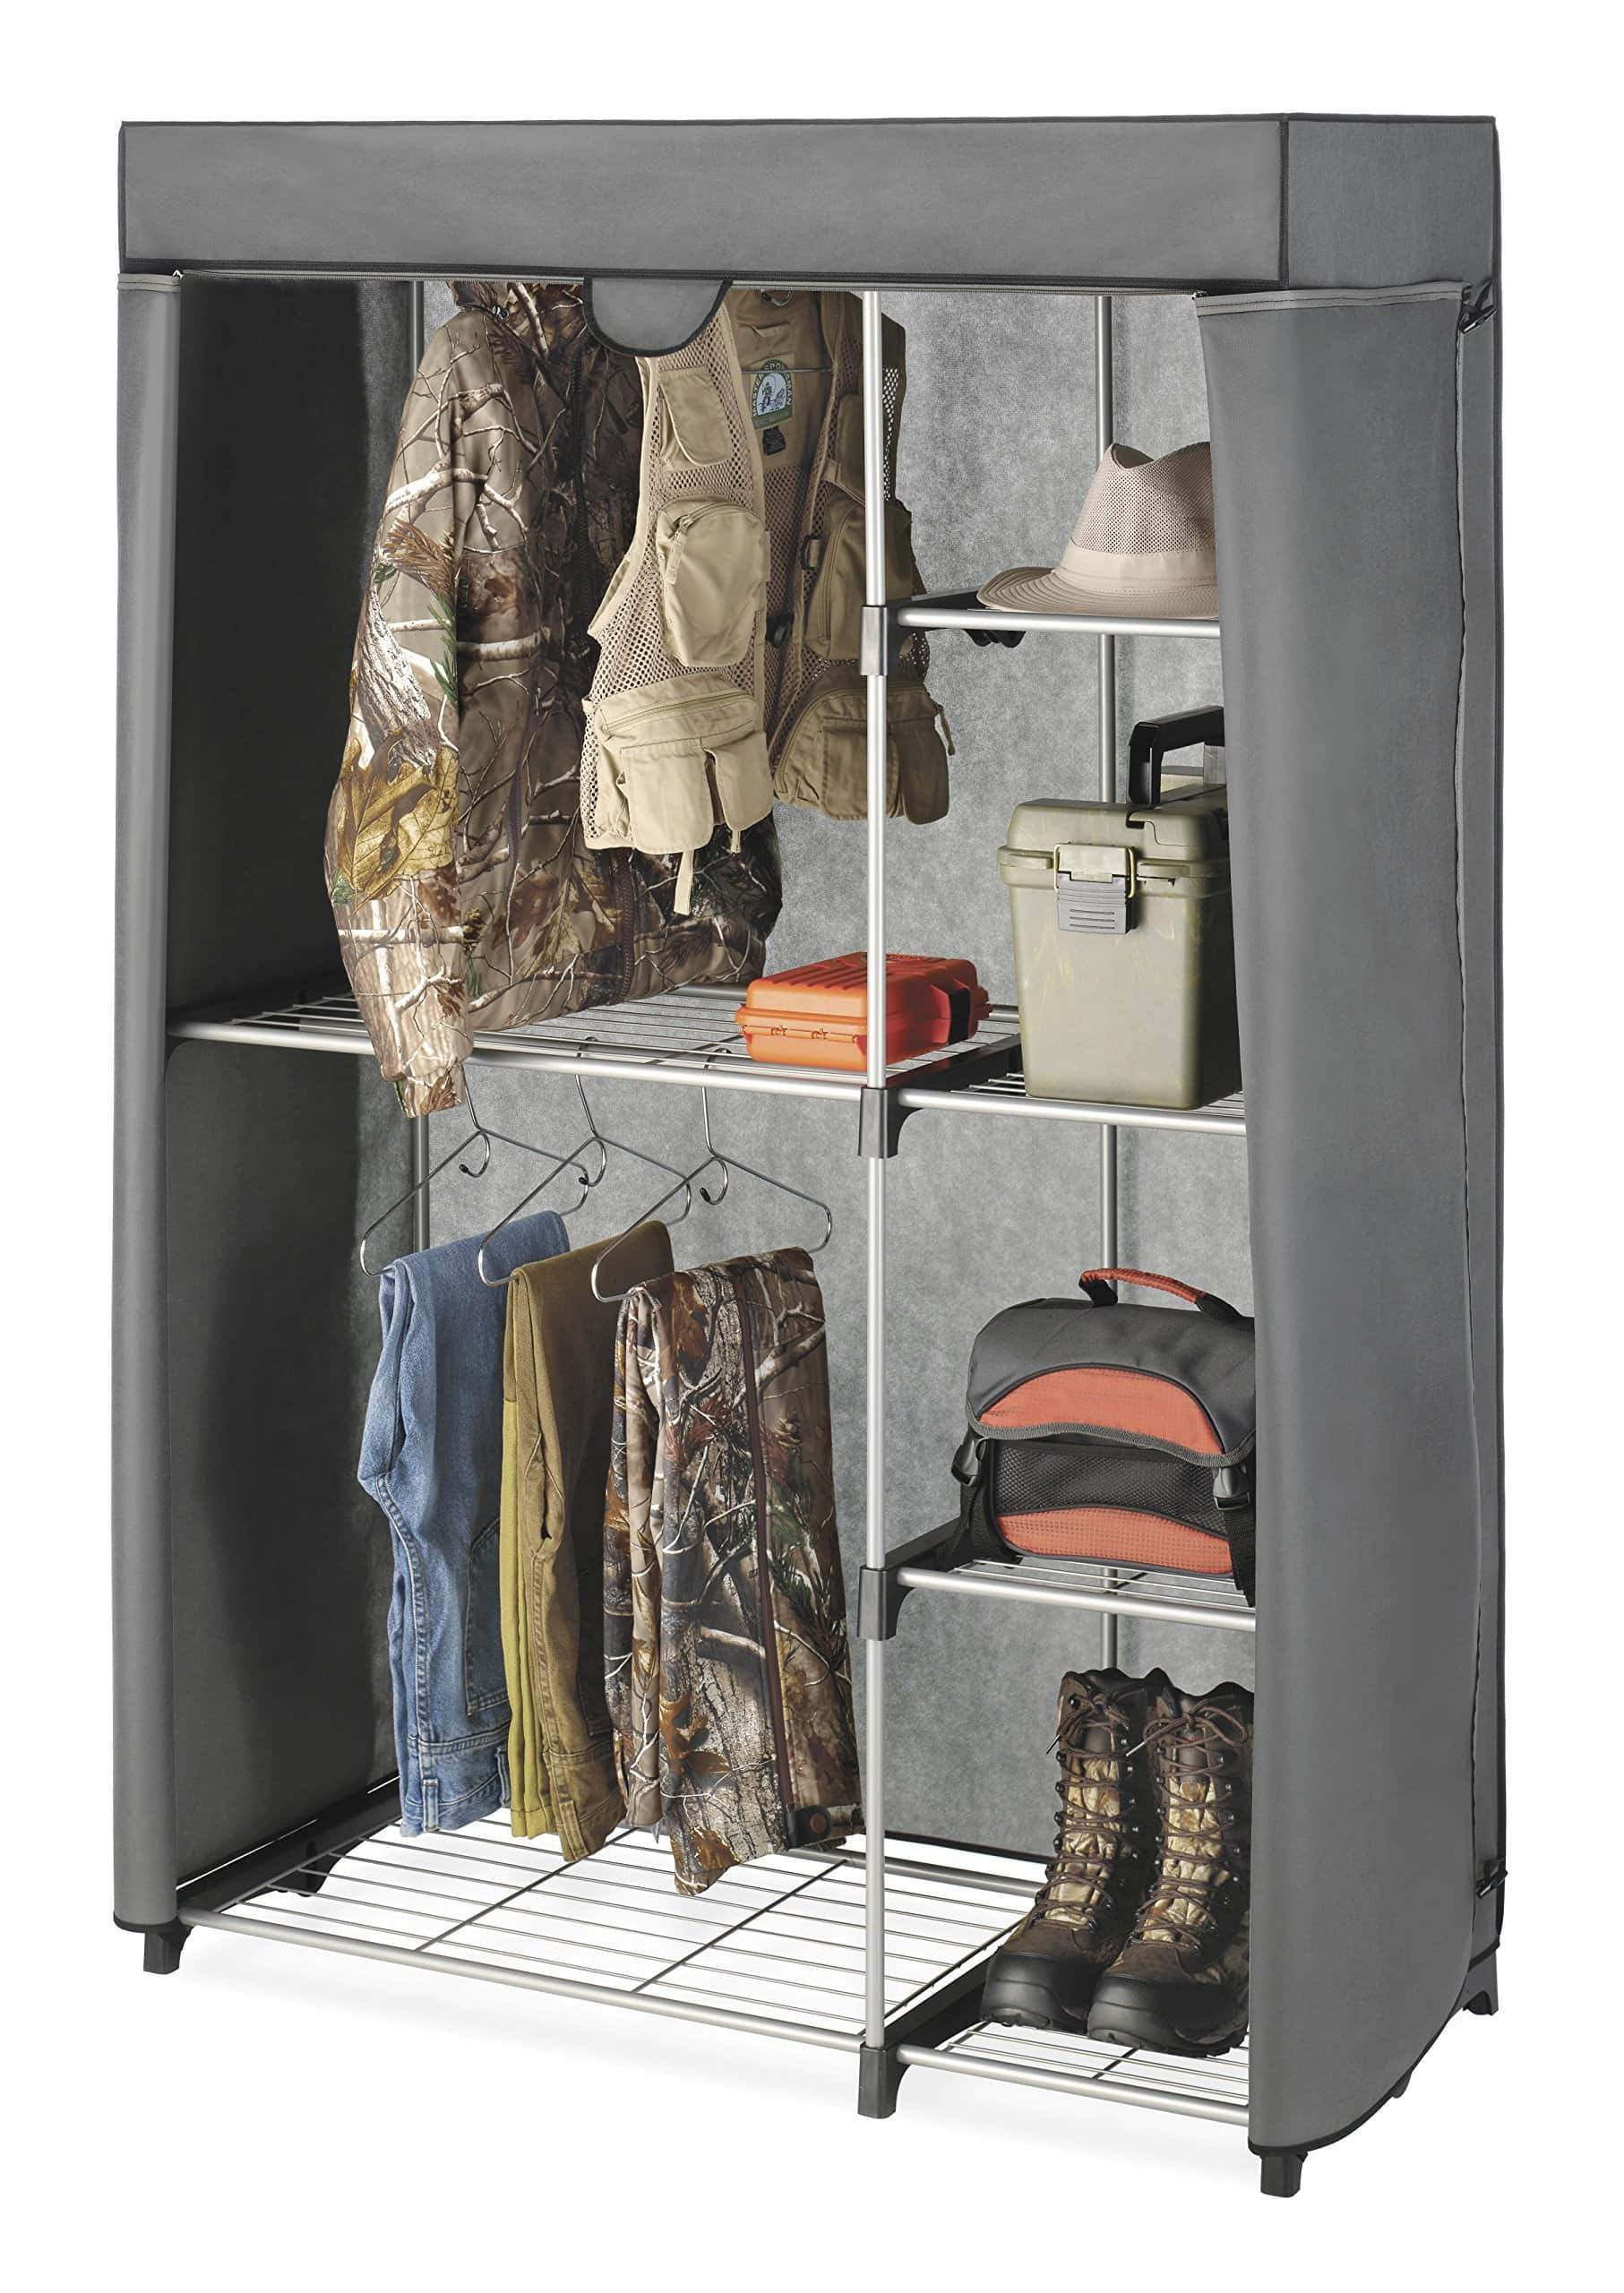 Select nice whitmor deluxe utility closet 5 extra strong shelves removable cover